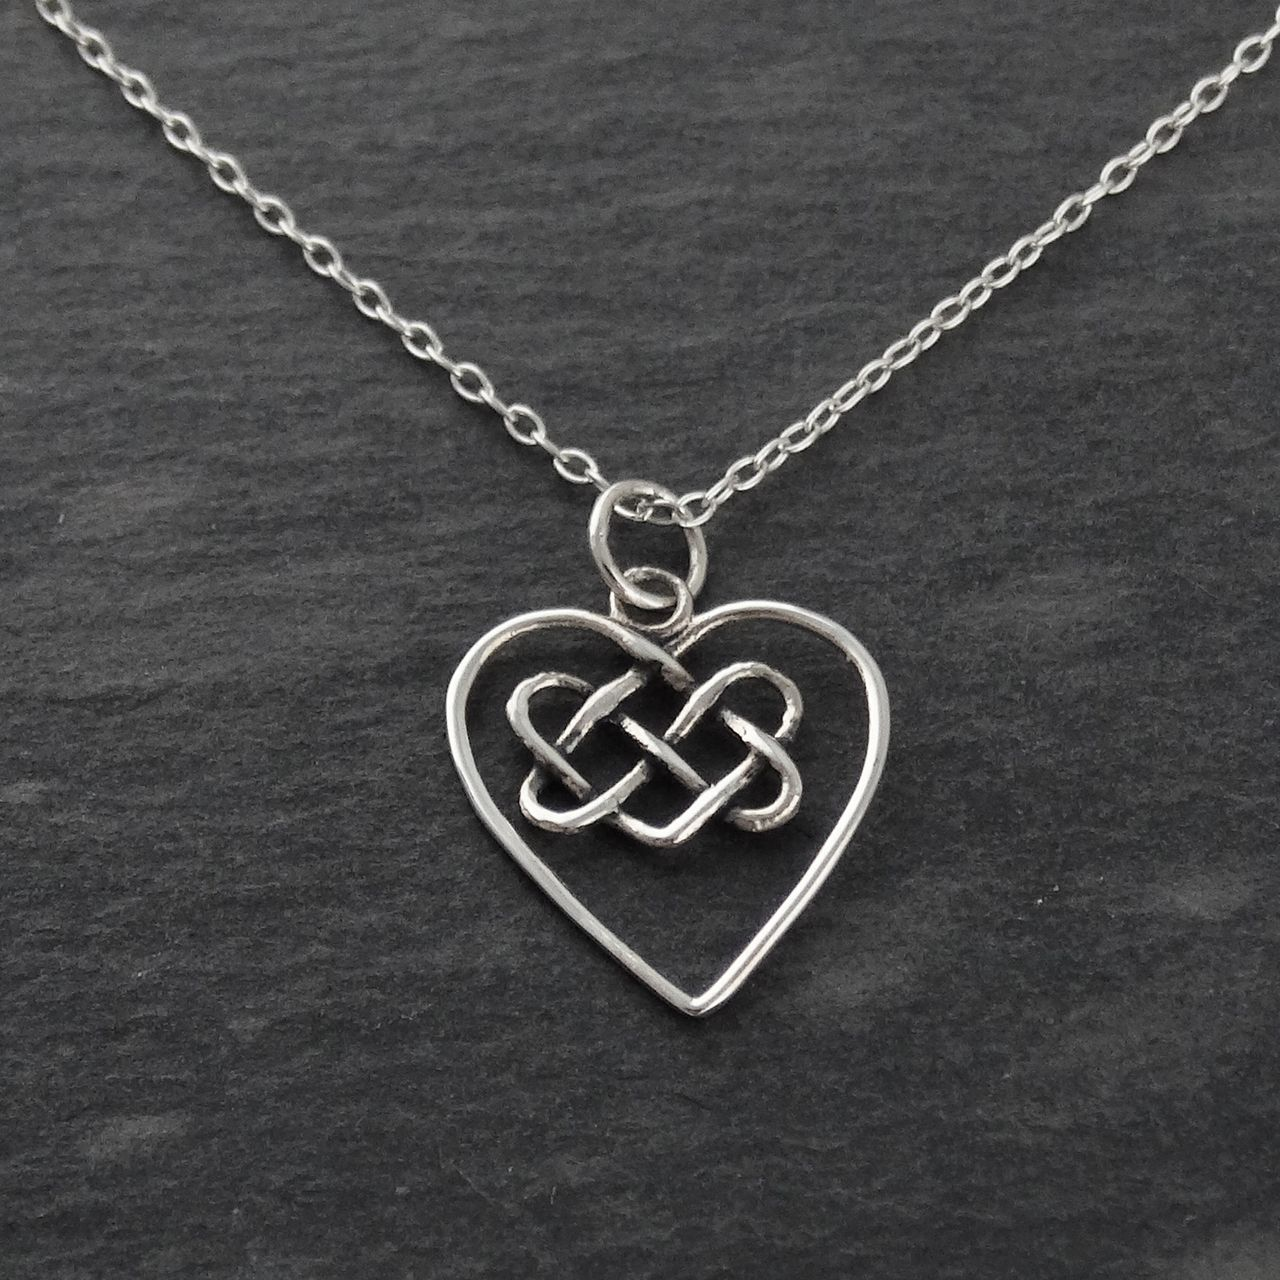 Celtic knot heart necklace 925 sterling silver adornos celtic knot heart necklace 925 sterling silver aloadofball